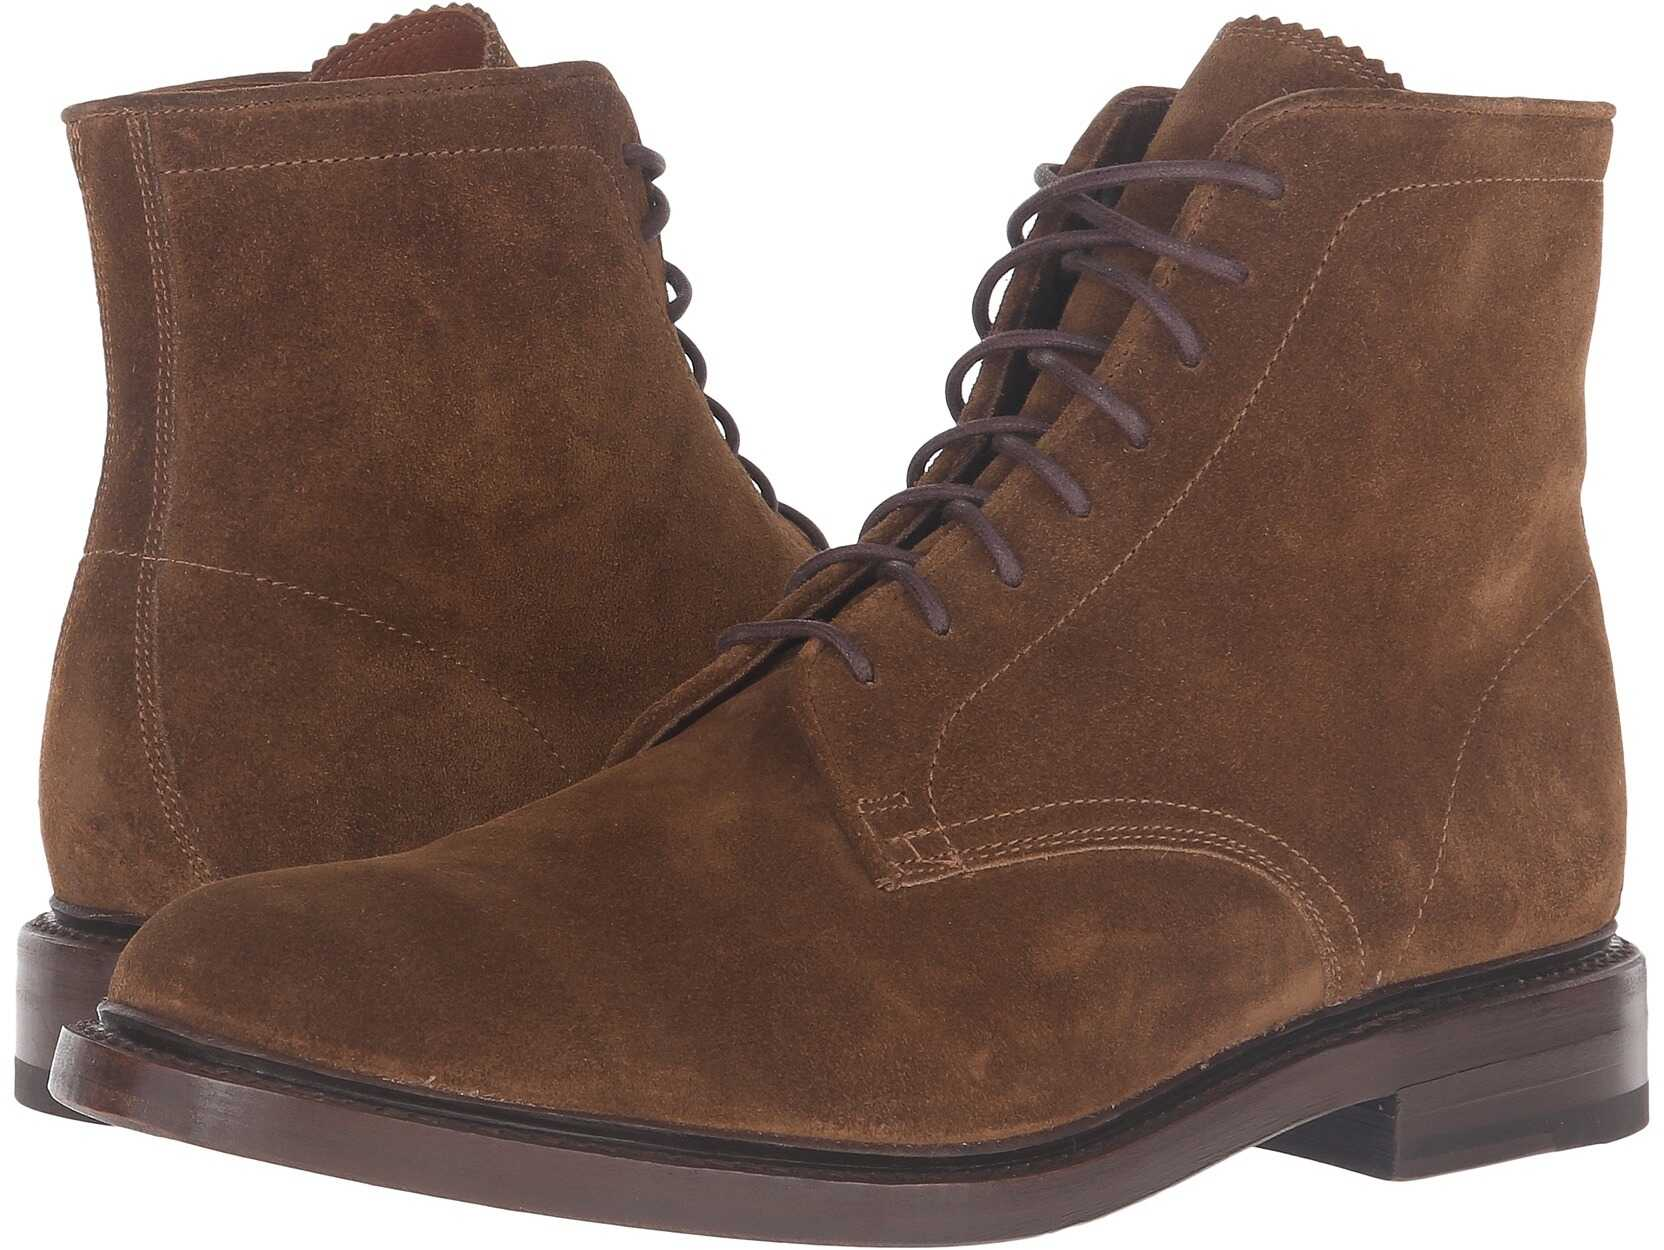 Frye Jones Lace-Up* Chestnut Oiled Suede